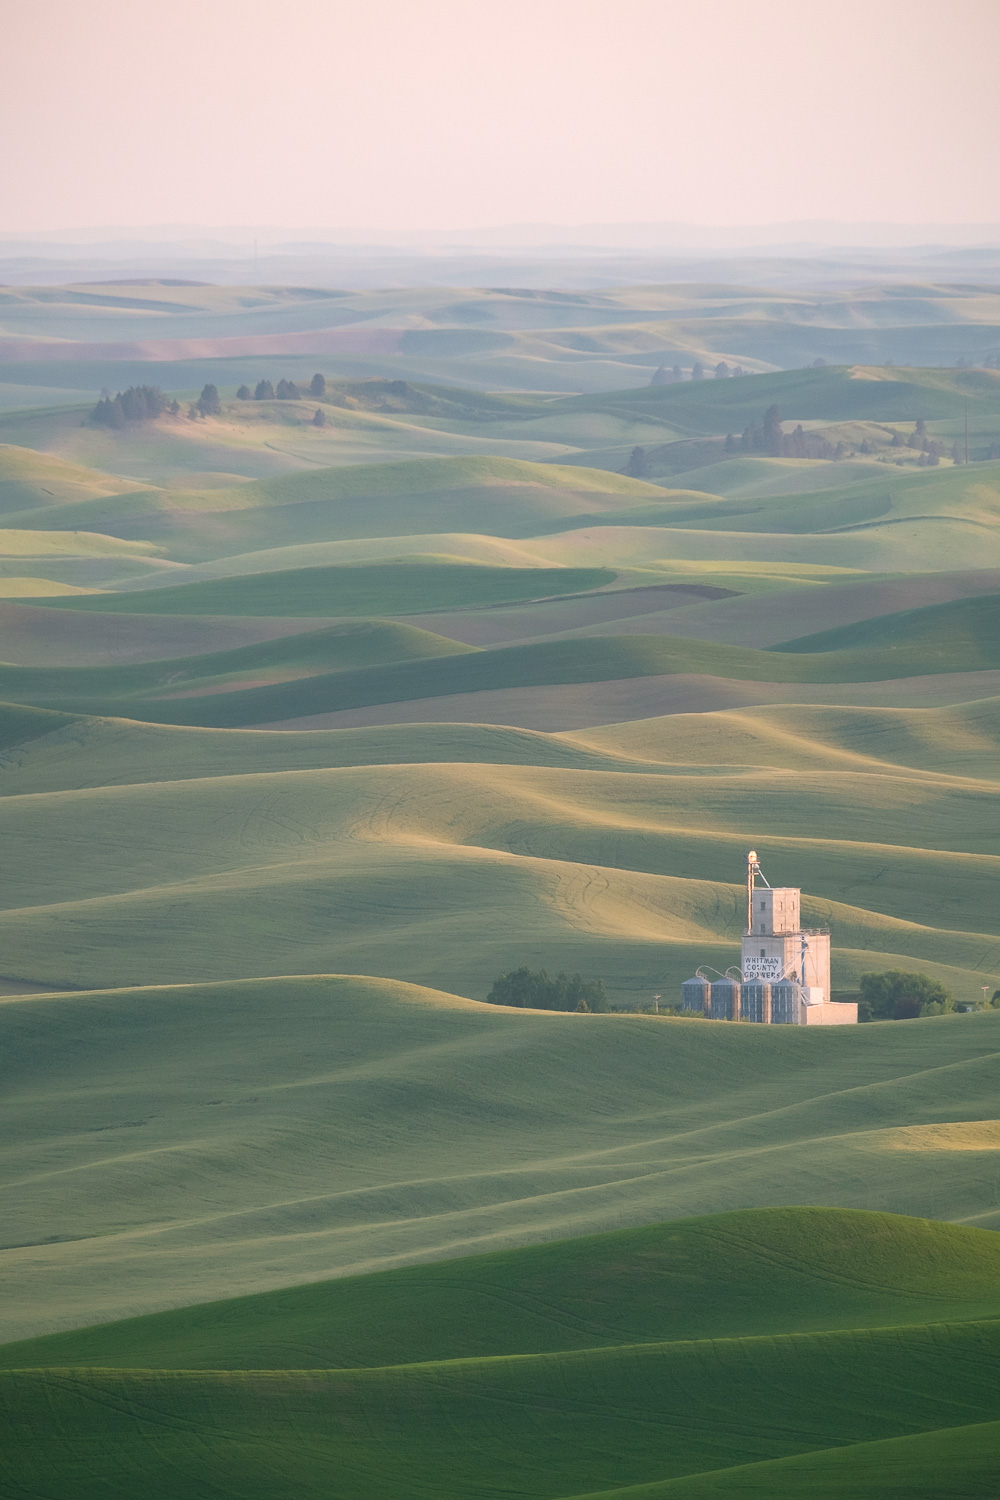 Dusk views from Steptoe Butte State Park, Washington.